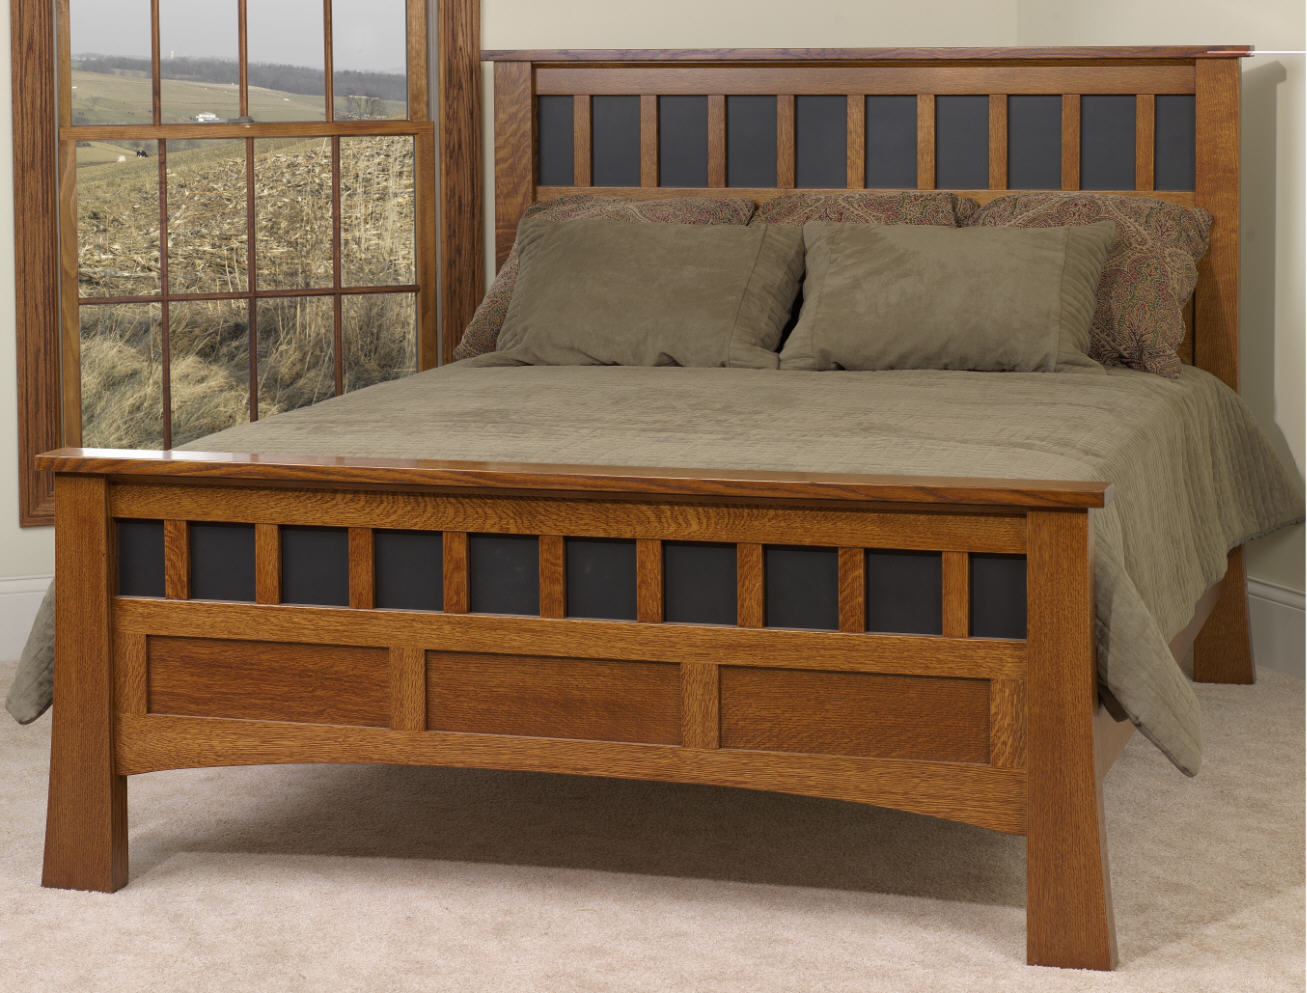 Bridgeport antique mission bed 550 mb2712 65 bedroom for Stone barn furnishings